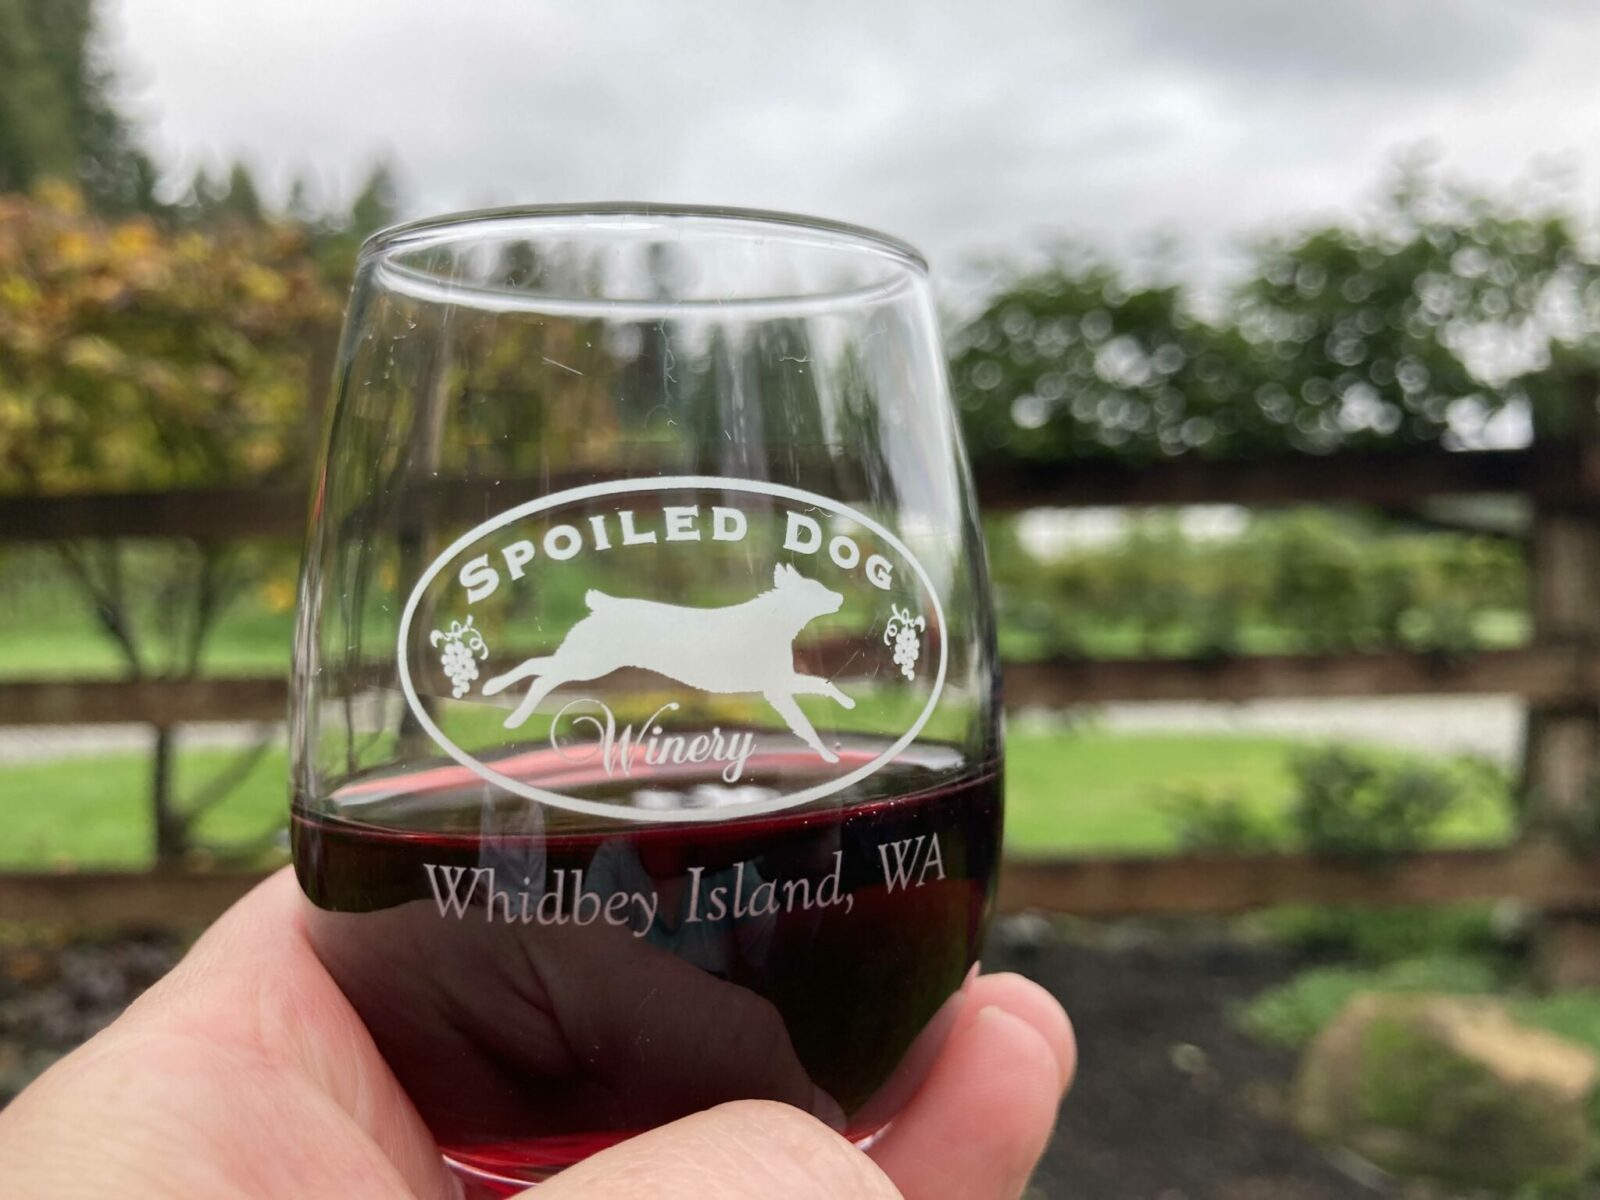 """A wine glass with a picture of a dog that says """"spoiled dog winery whidbey island wa"""". A person is holding the glass about half full of red wine in front of a blurry wooden fence and vineyard in the background"""